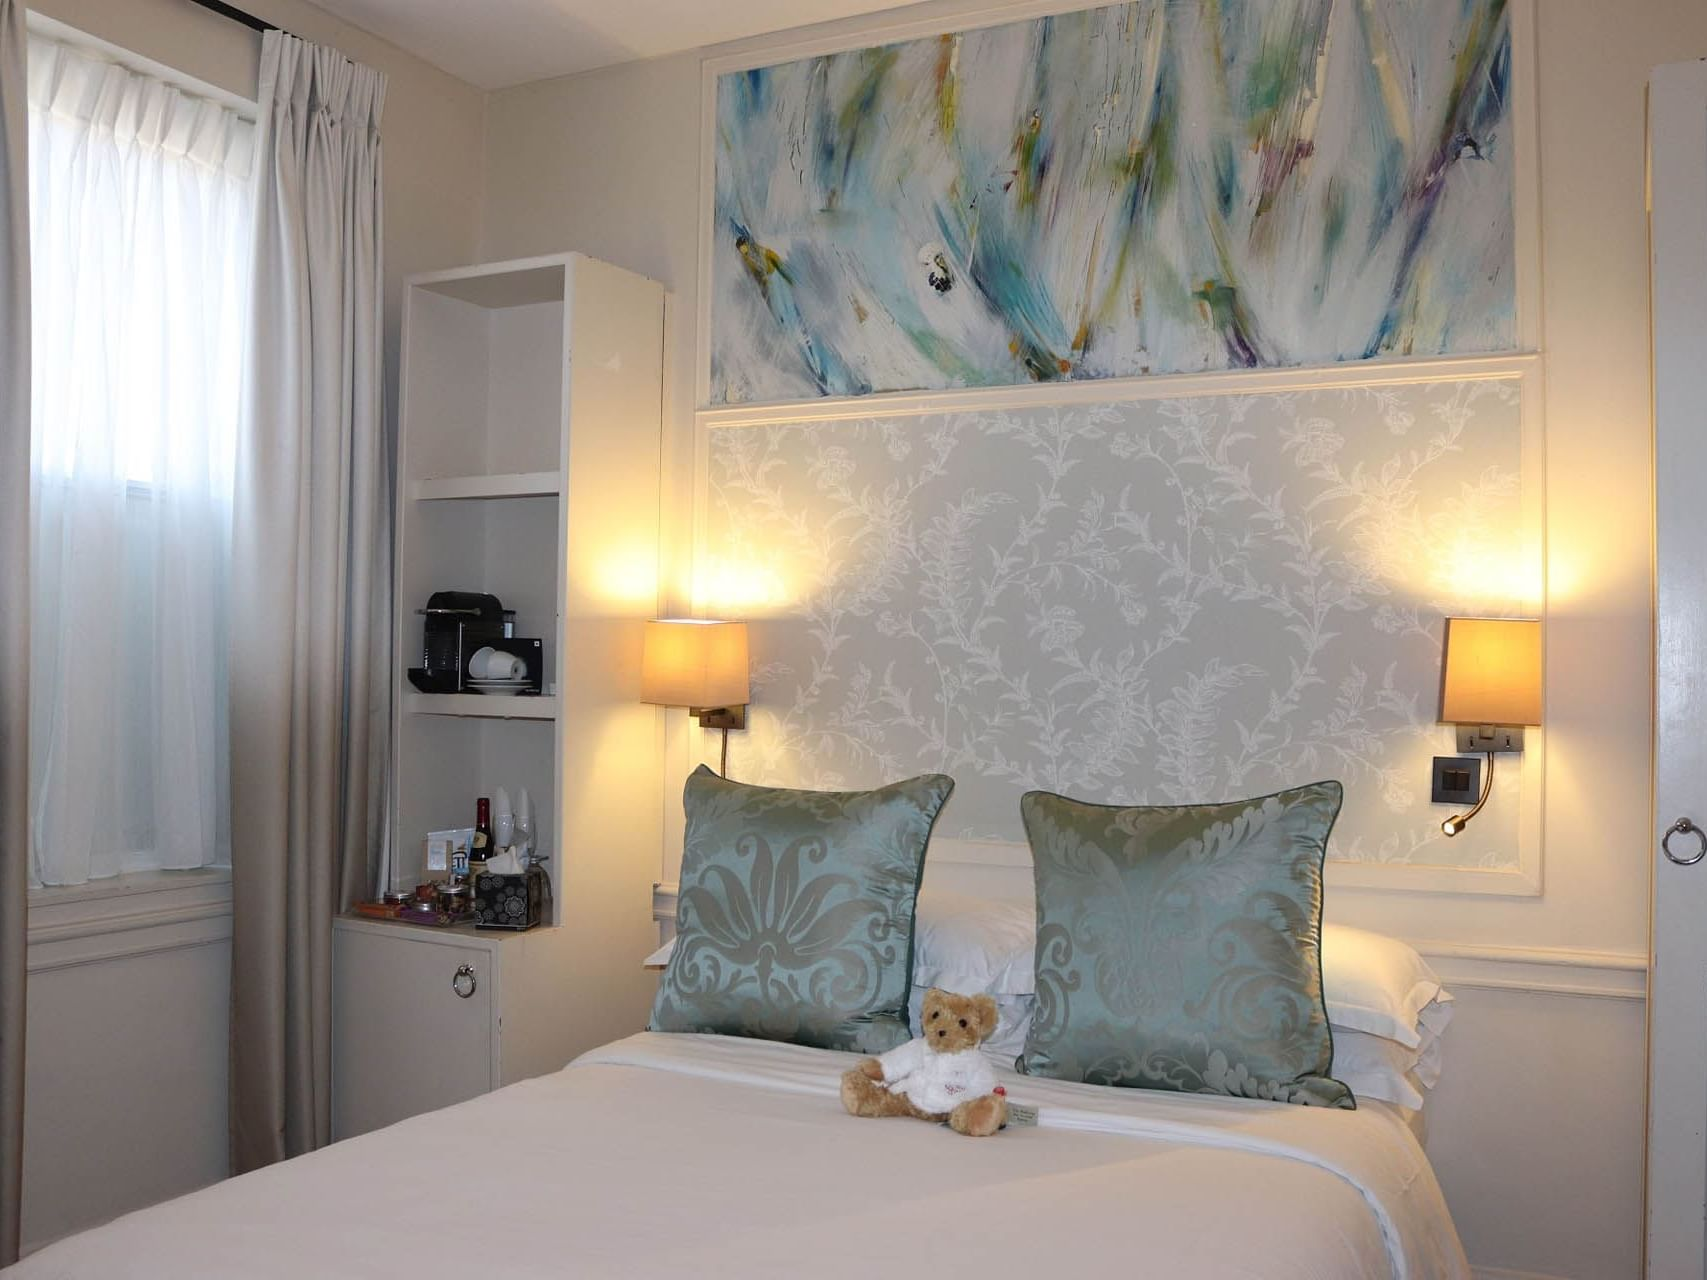 Small double room with a double bed at Sloane Square Hotel